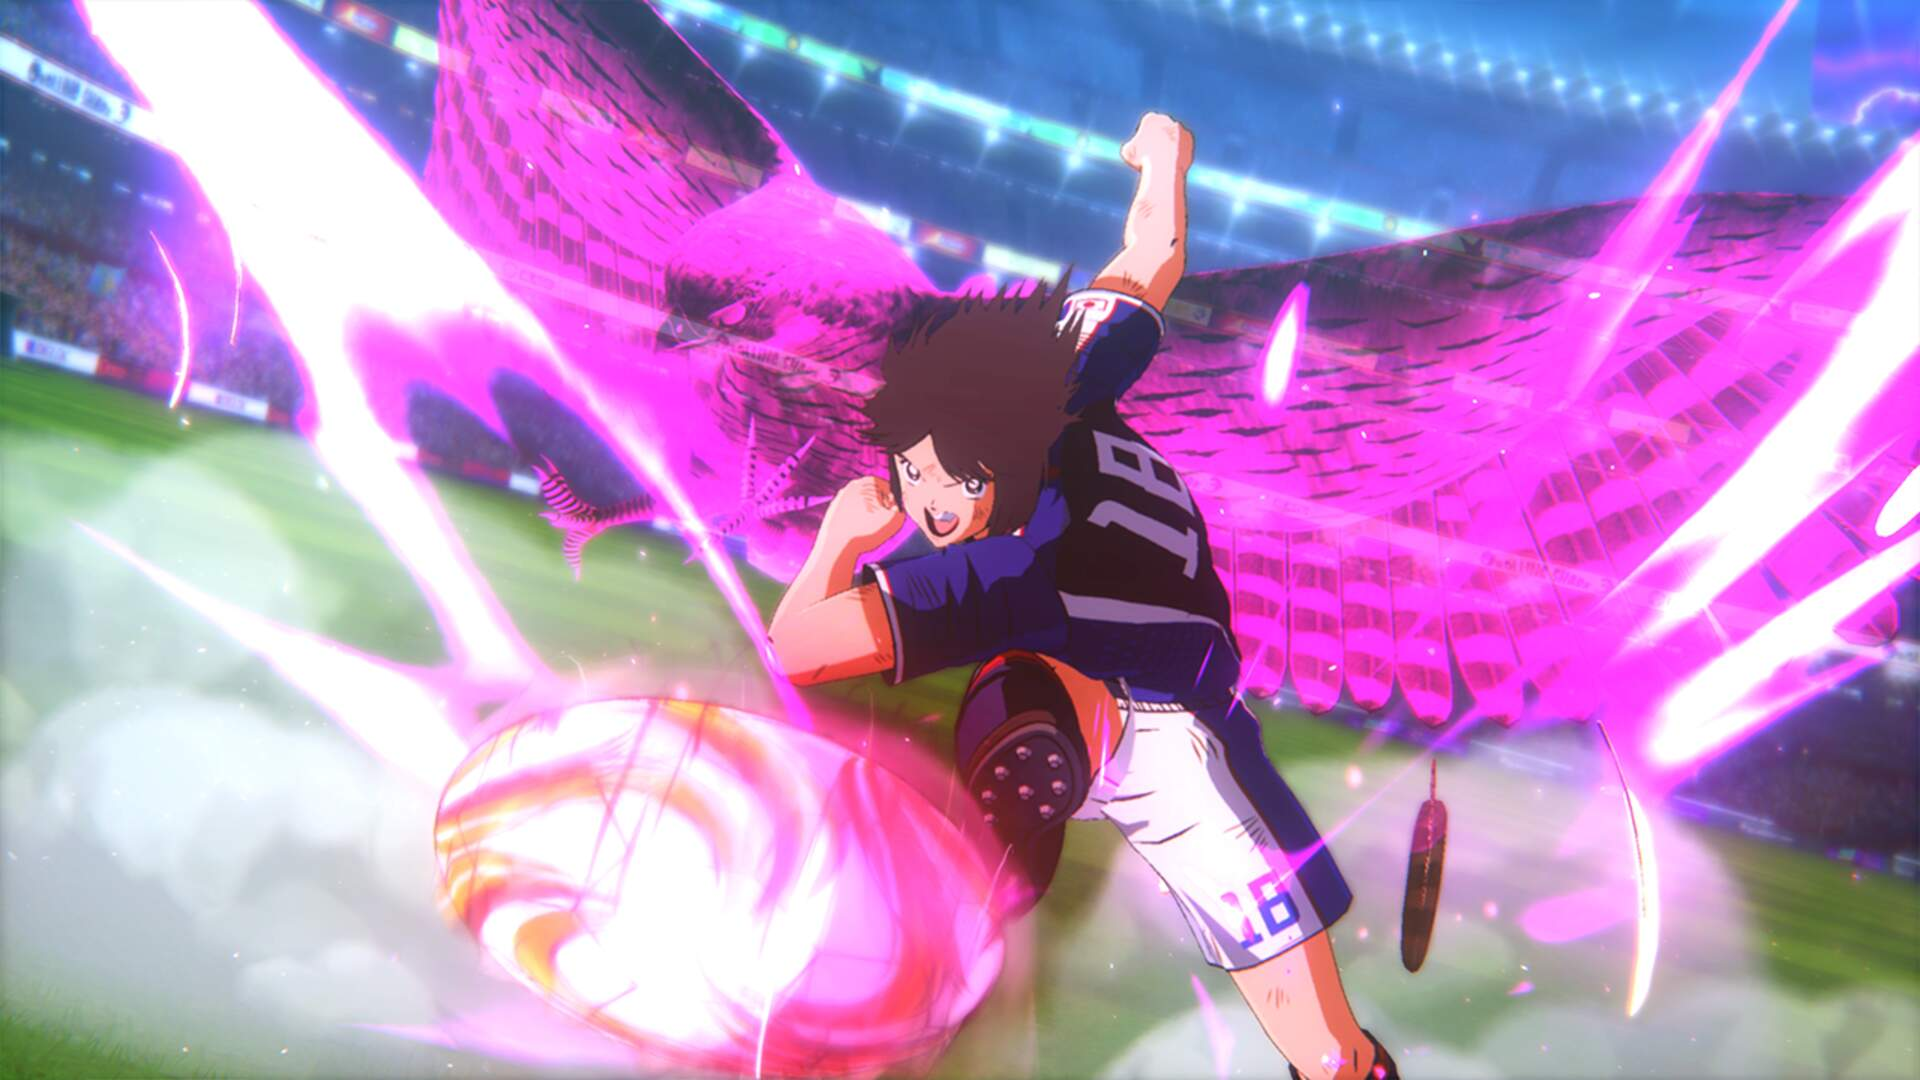 Captain Tsubasa's Surprisingly Rich Video Game Heritage and Its Ties to Tecmo Bowl and Ninja Gaiden